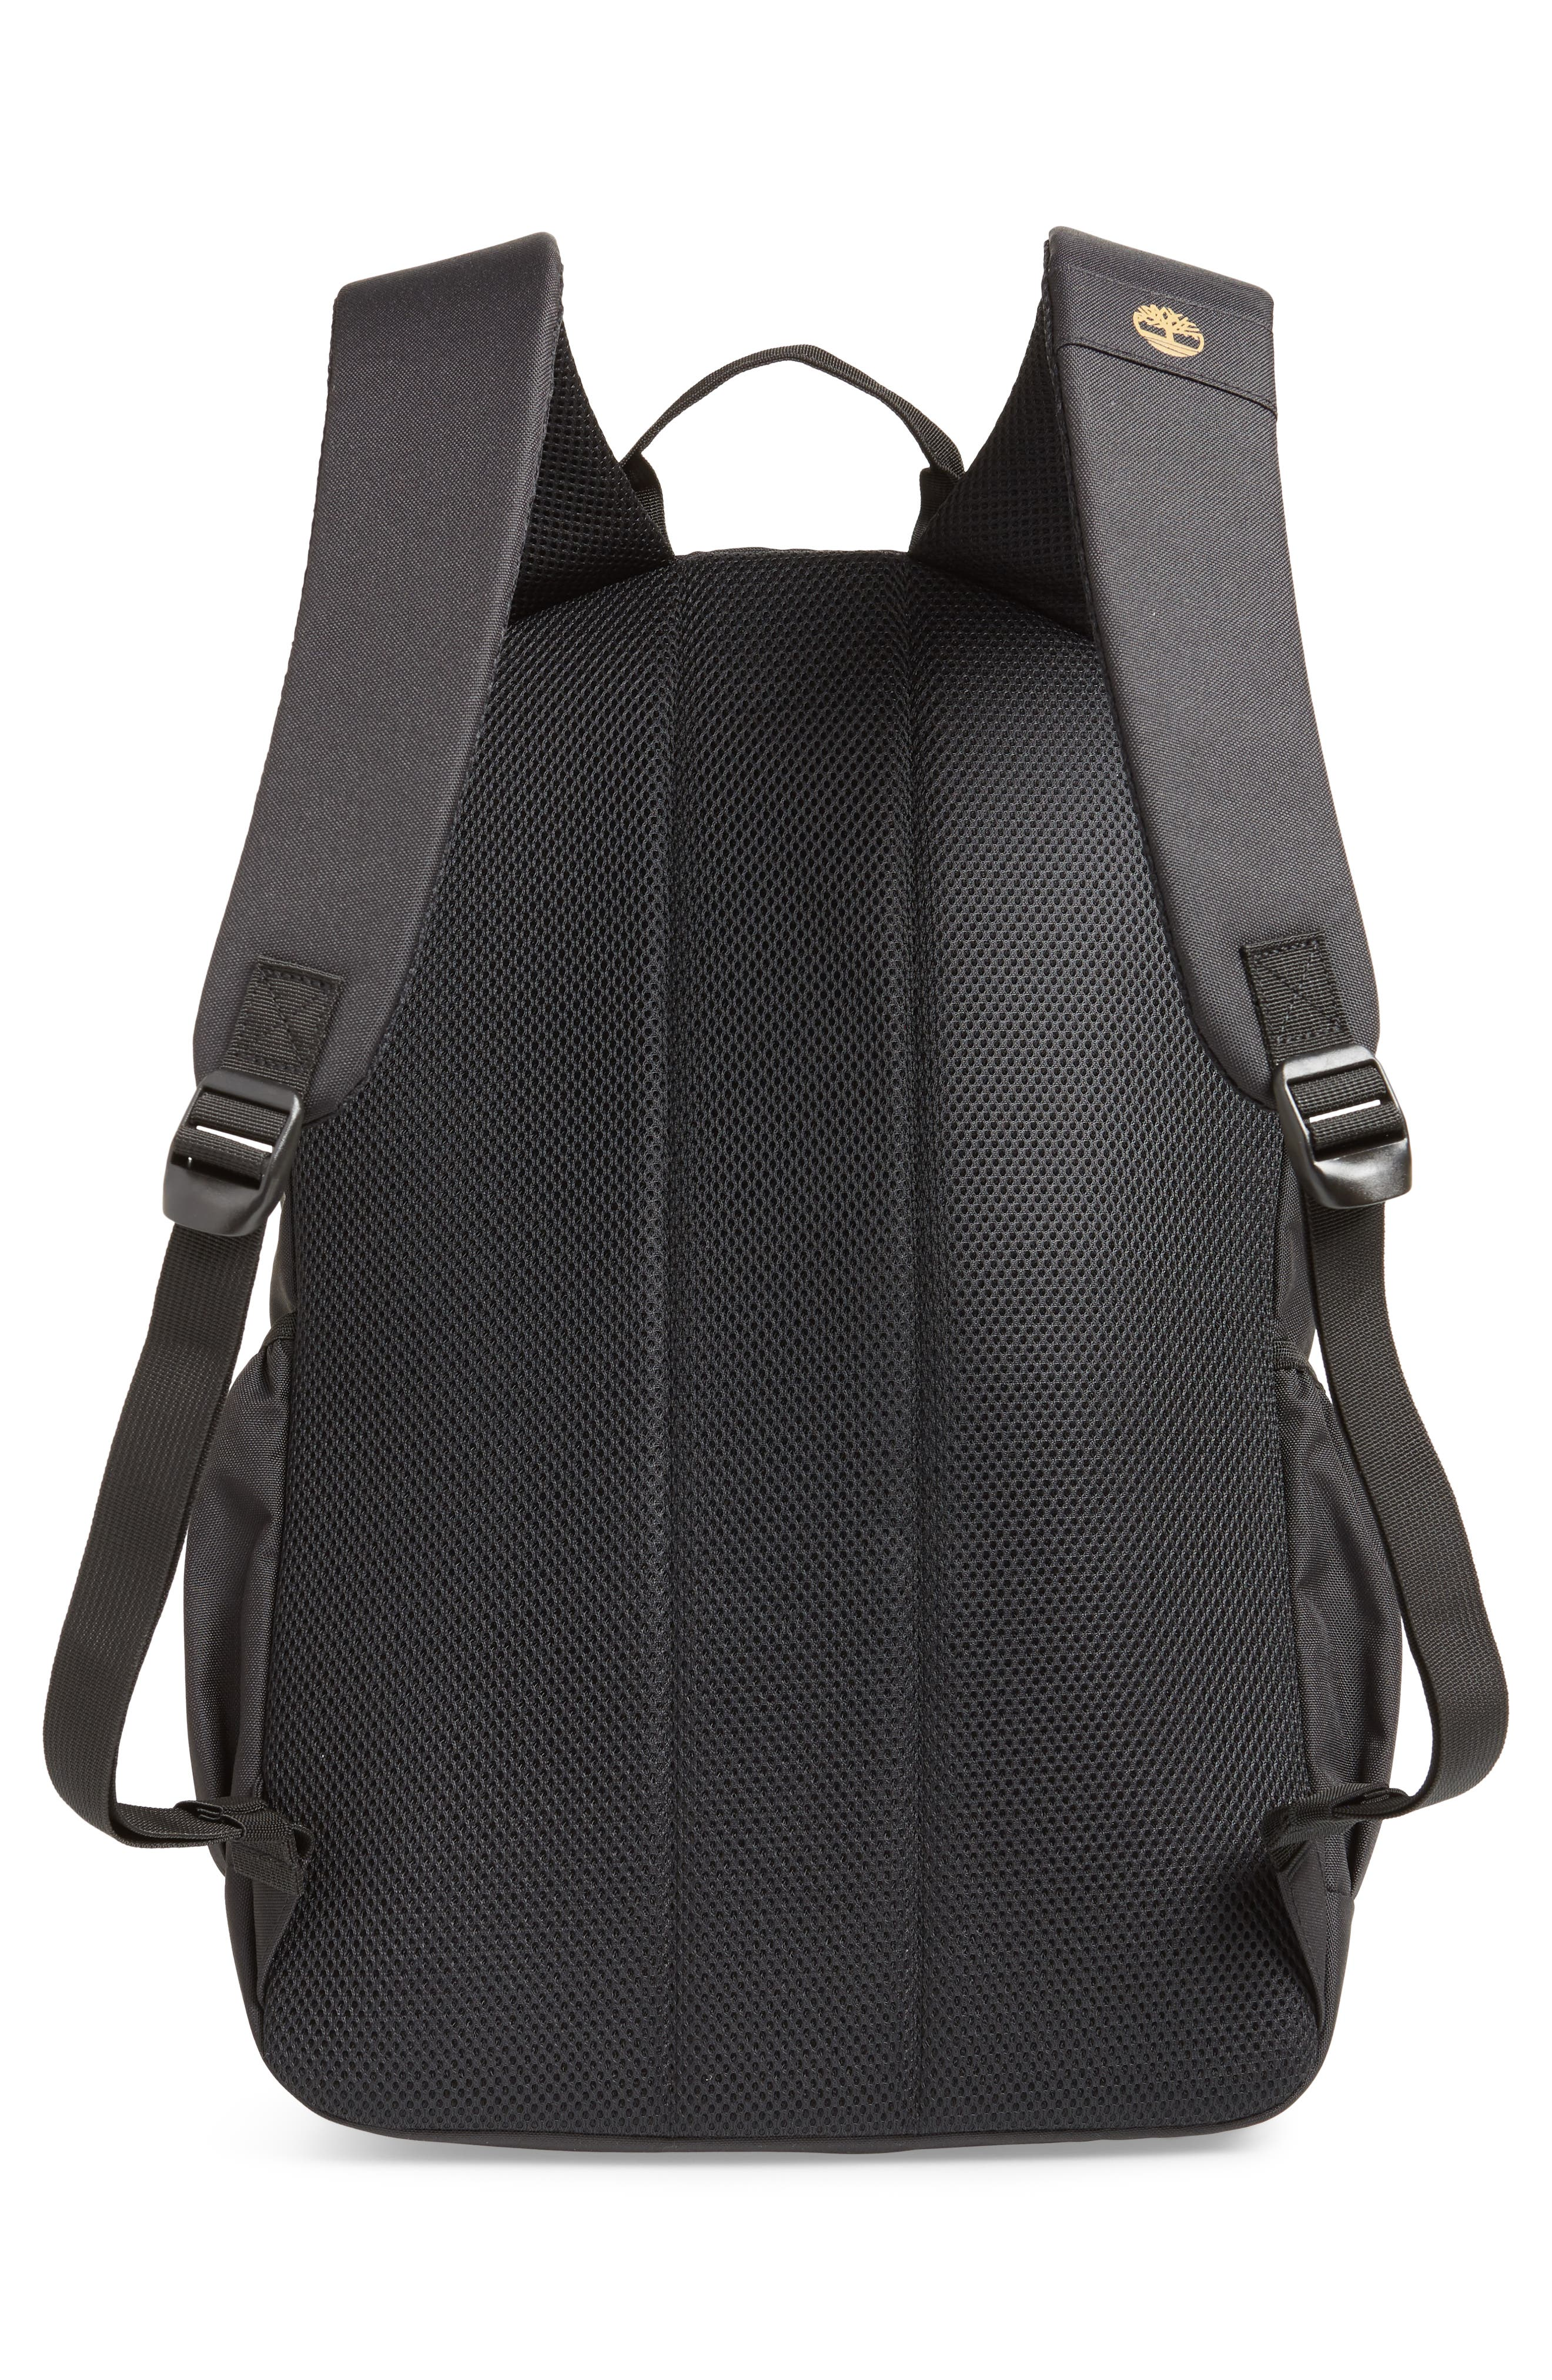 TIMBERLAND, Logo Graphic Water Resistant Backpack, Alternate thumbnail 3, color, BLACK